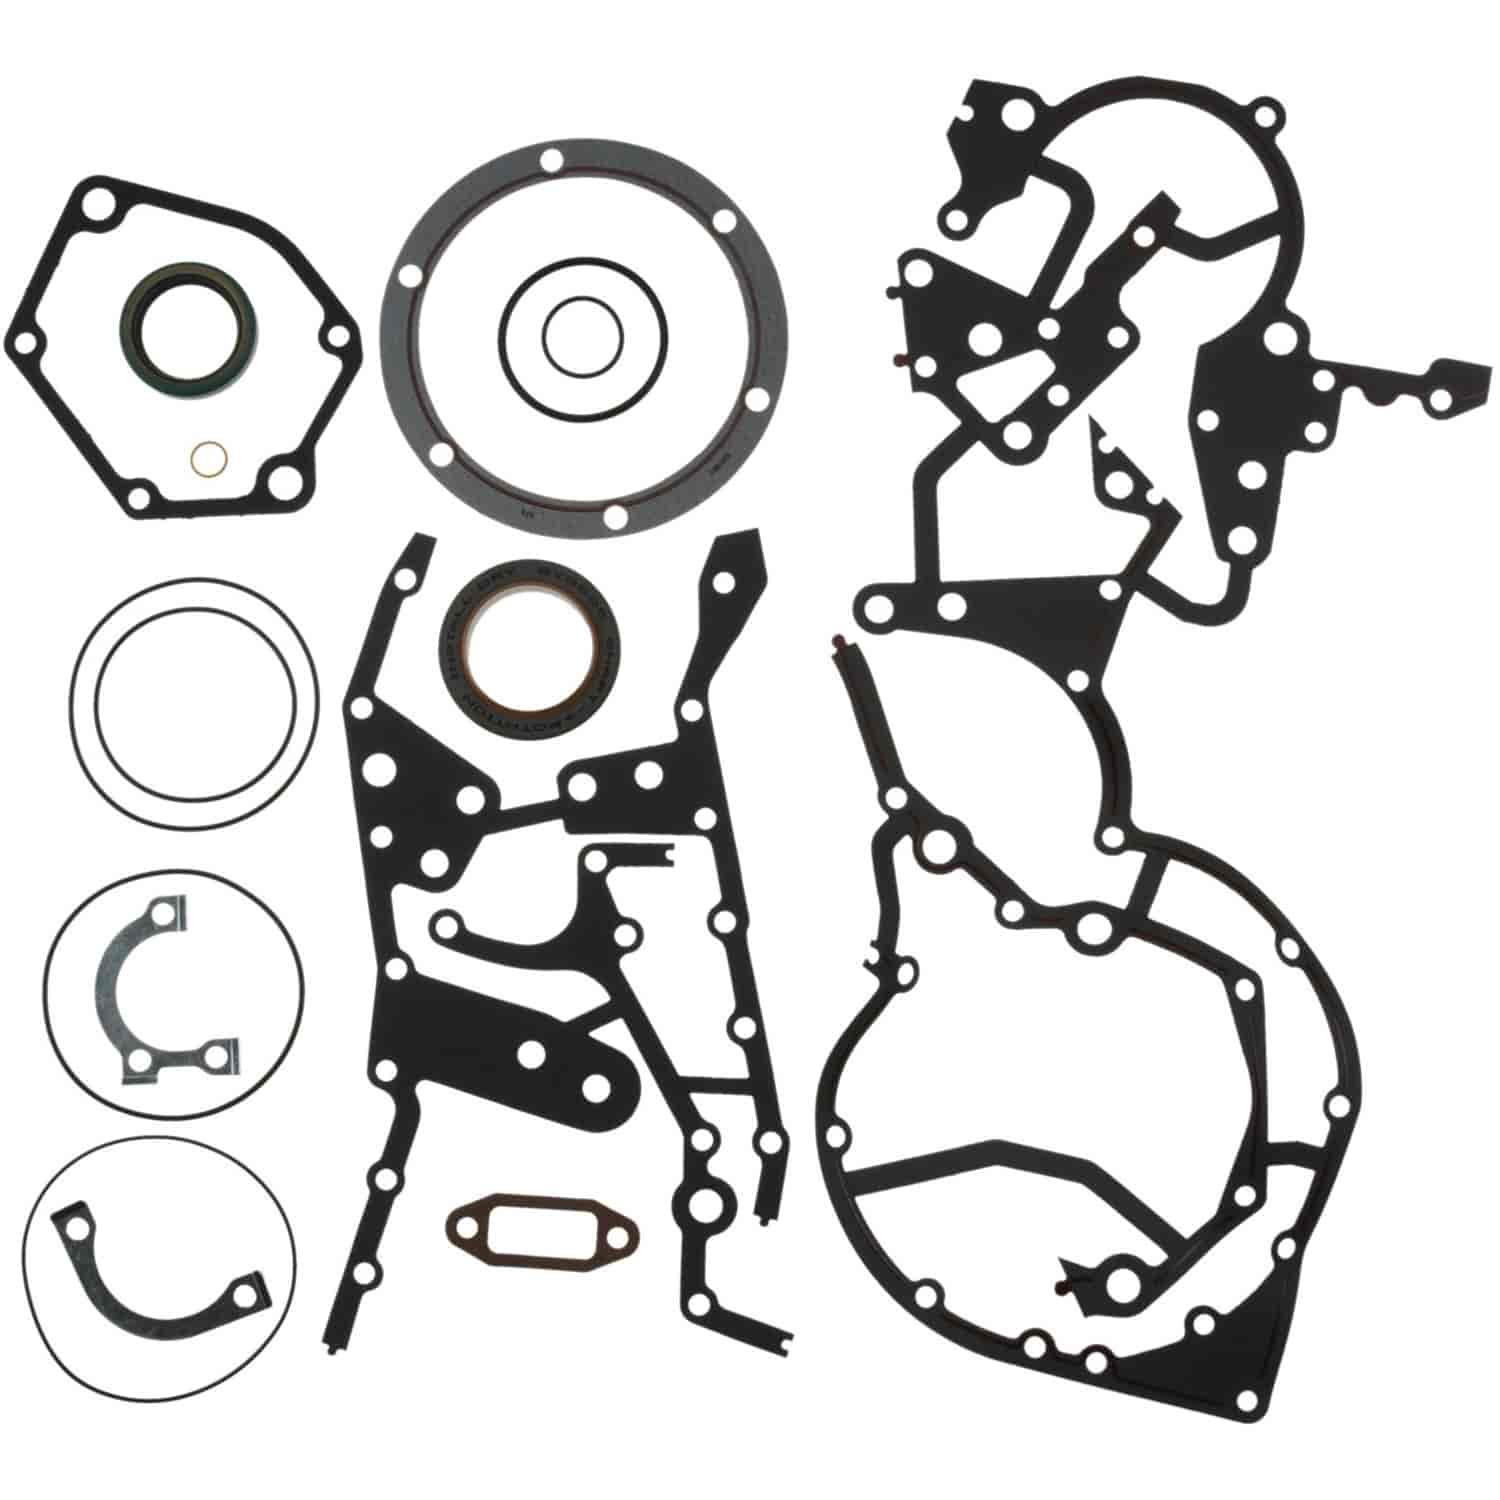 Interesting mack mp7 engine parts diagram gallery best image wire mack mp7 engine wiring schematic wiring diagram and fuse box asfbconference2016 Image collections